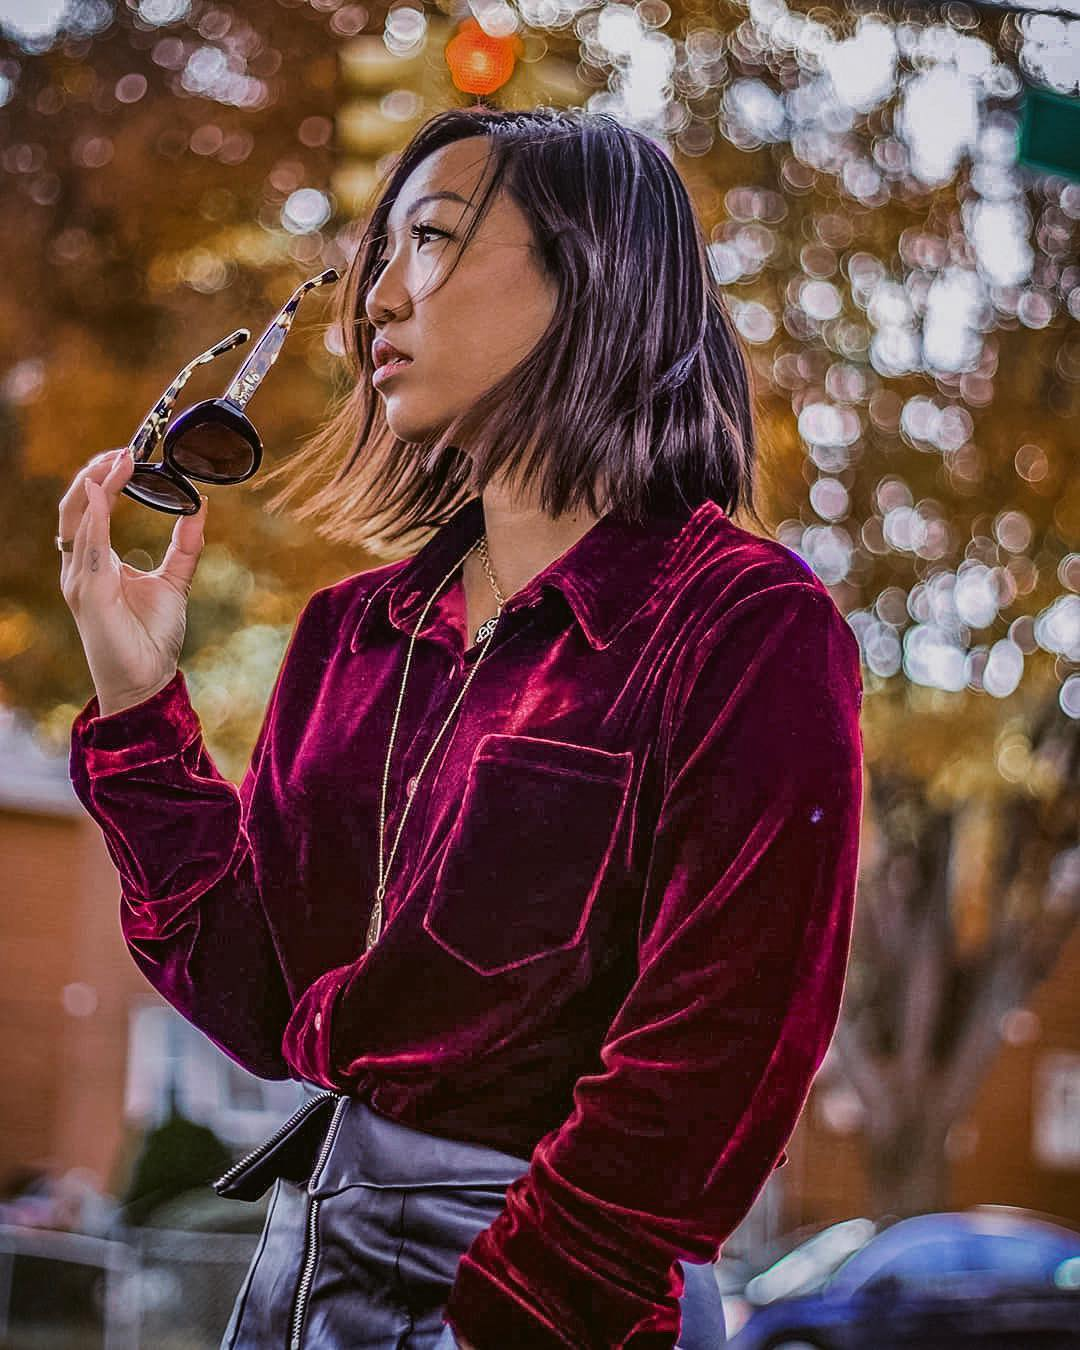 Velour Shirt In Maroon Tucked In Black Leather Skirt: Fall OOTD 2020